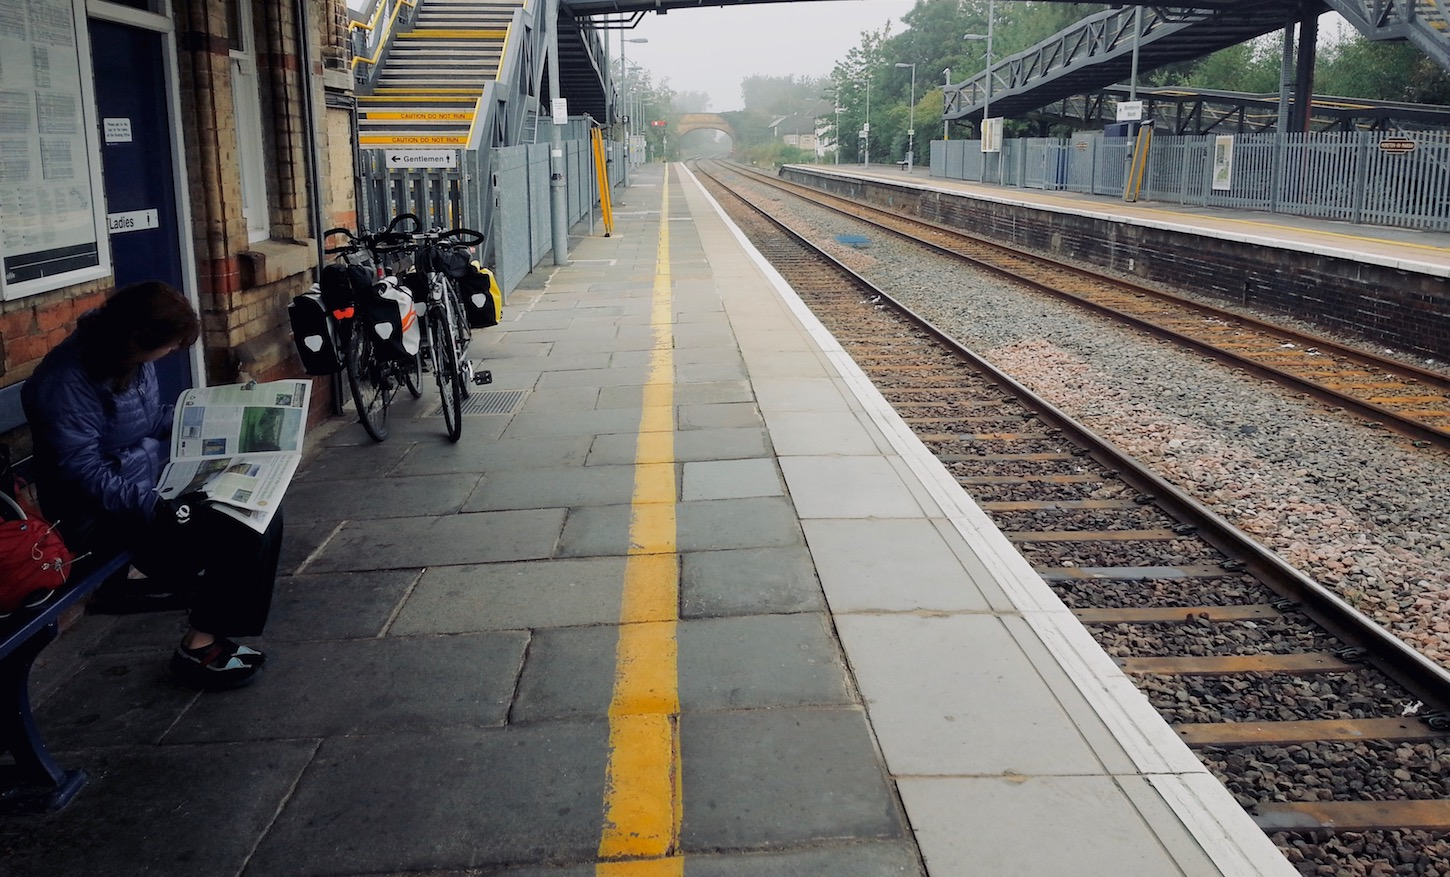 A cycle tourist waiting on a train platform in England